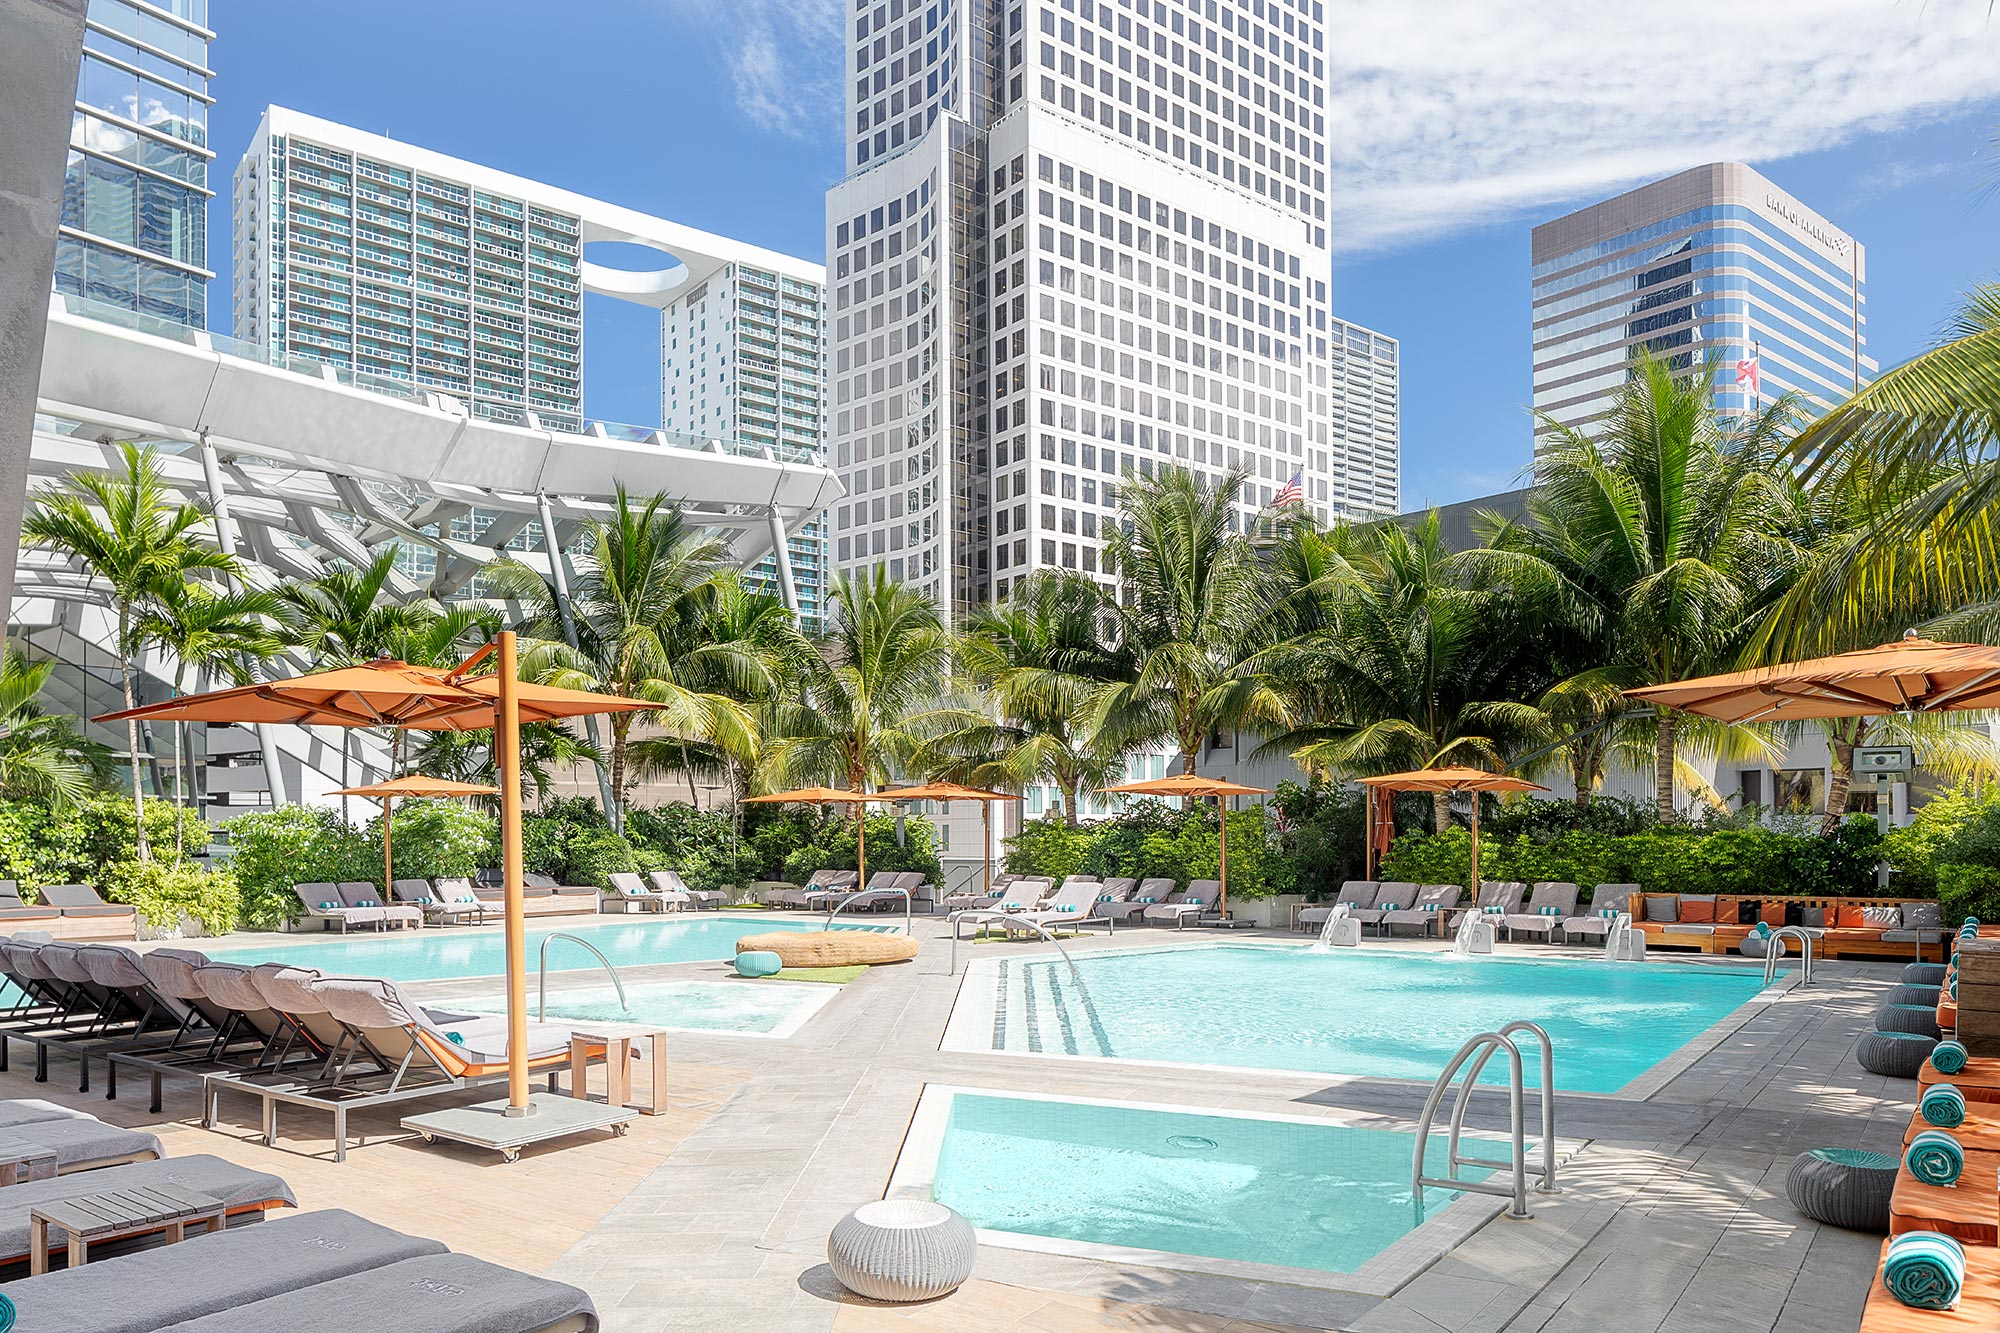 Hotel-Pool-Photography-Miami-Florida-by-Swiss-Photographer-Adrian-Kilchherr